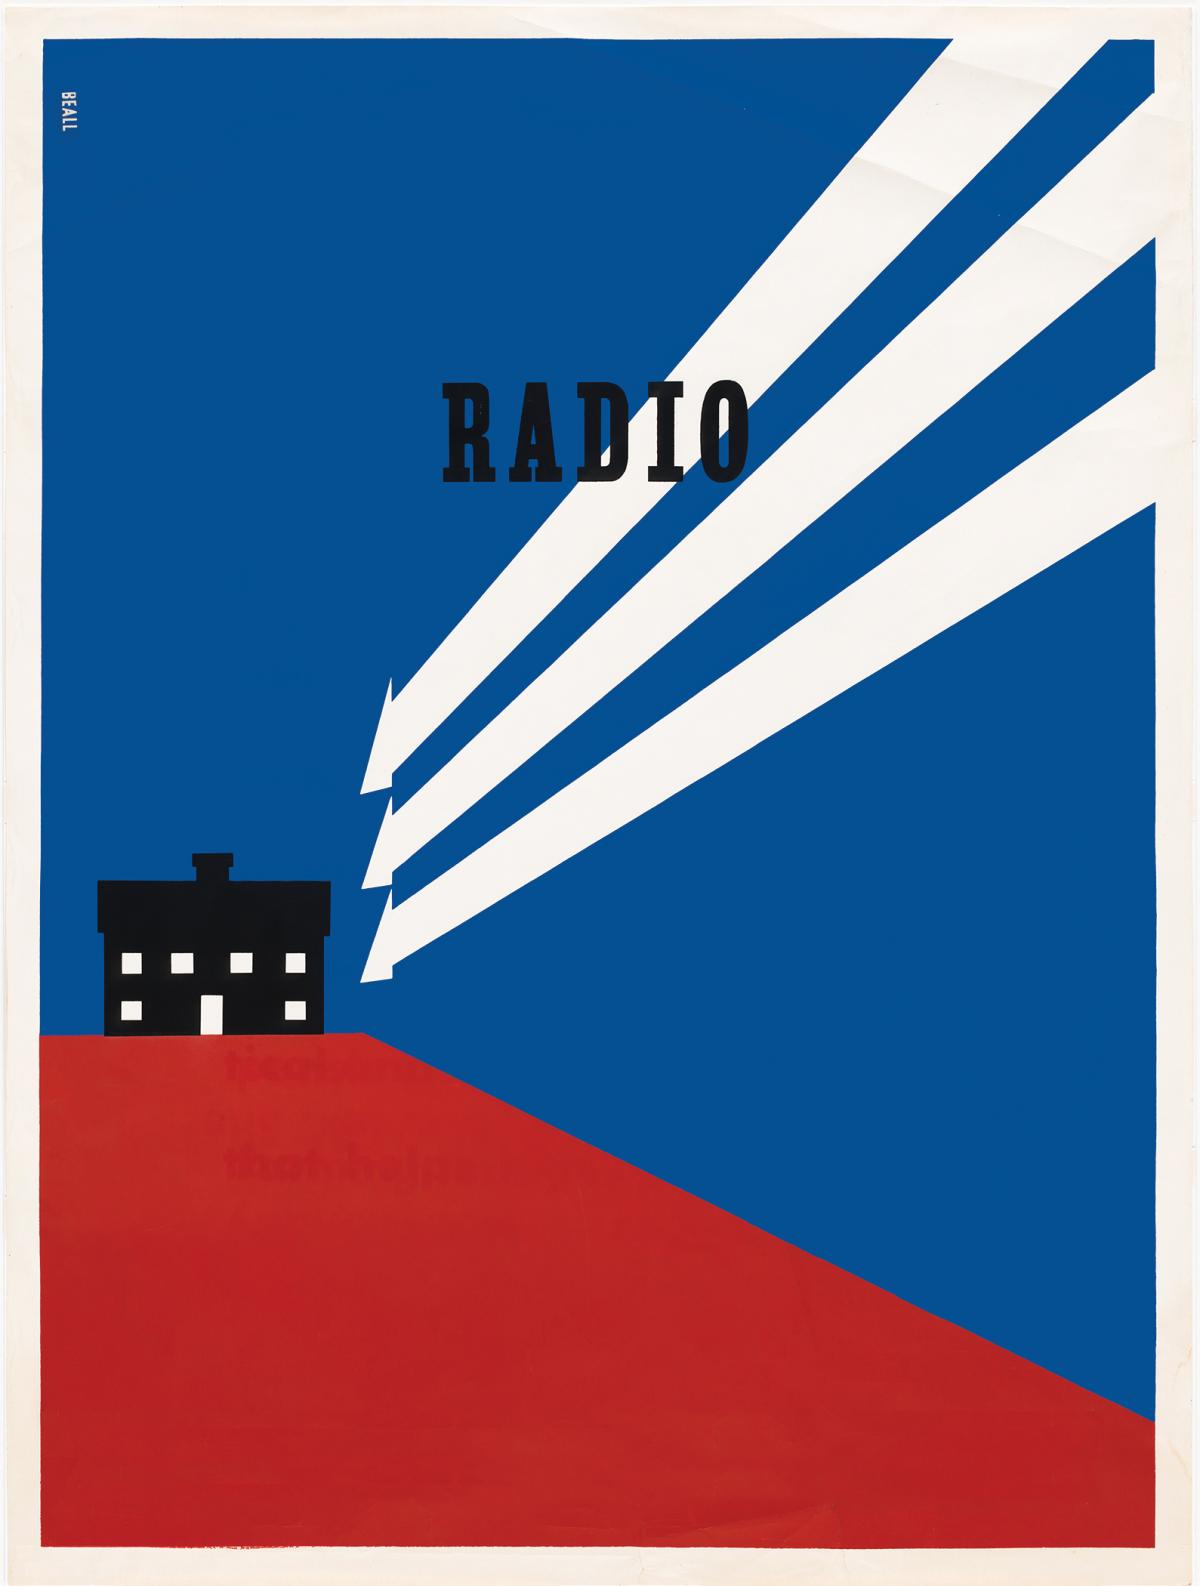 "Rural Electrification poster, 1937, showing a black house on a red hill with a blue background, connected to the word ""radio"" with white lines"